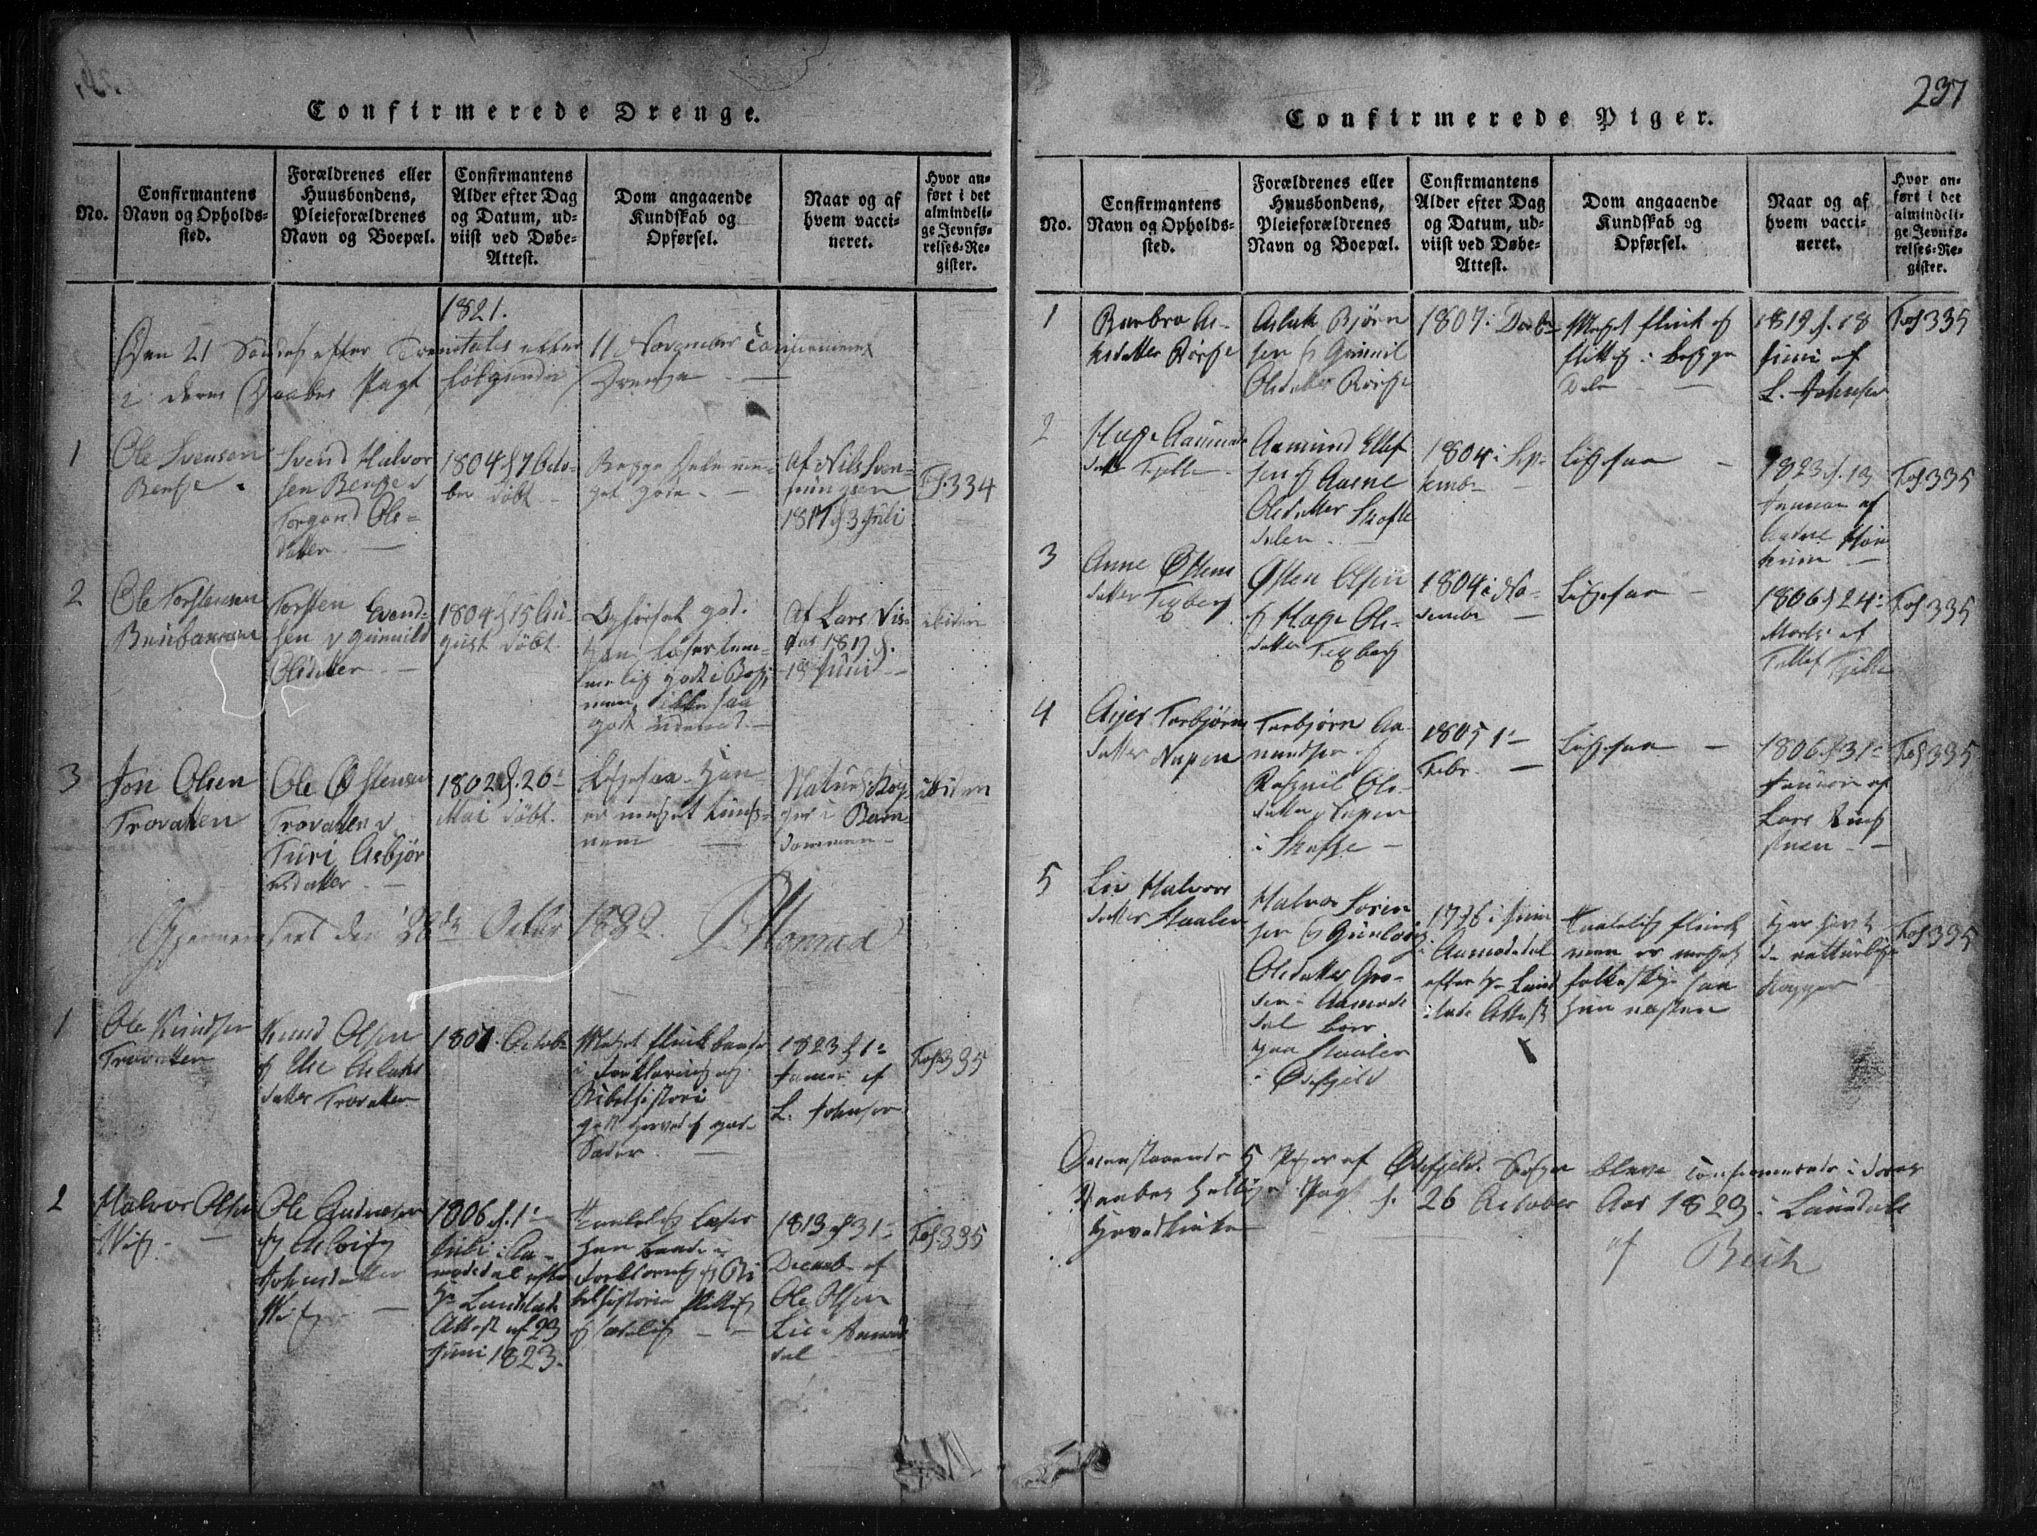 SAKO, Rauland kirkebøker, G/Gb/L0001: Parish register (copy) no. II 1, 1815-1886, p. 237